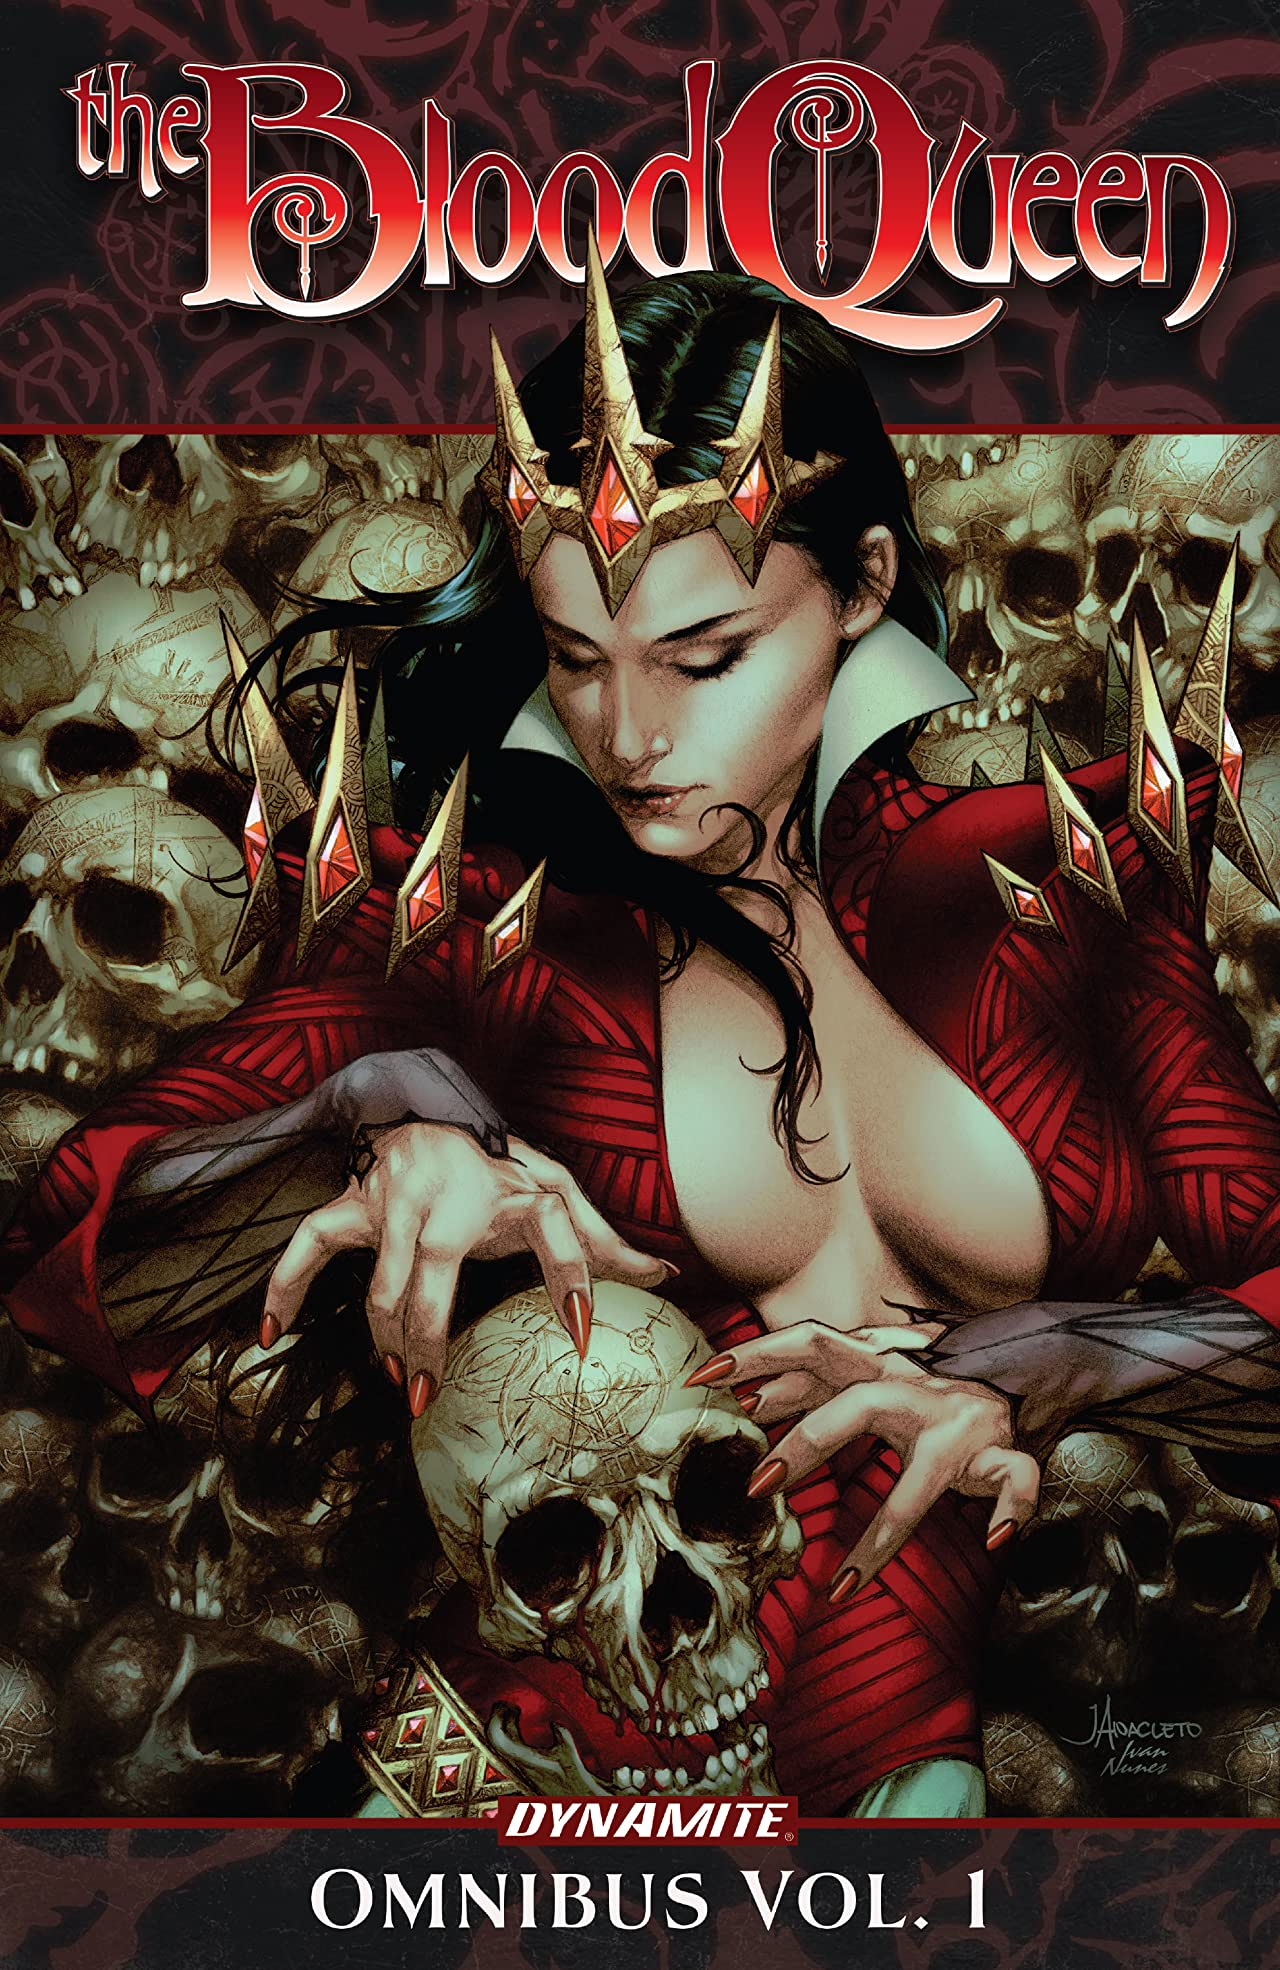 The Blood Queen: Omnibus Vol. 1